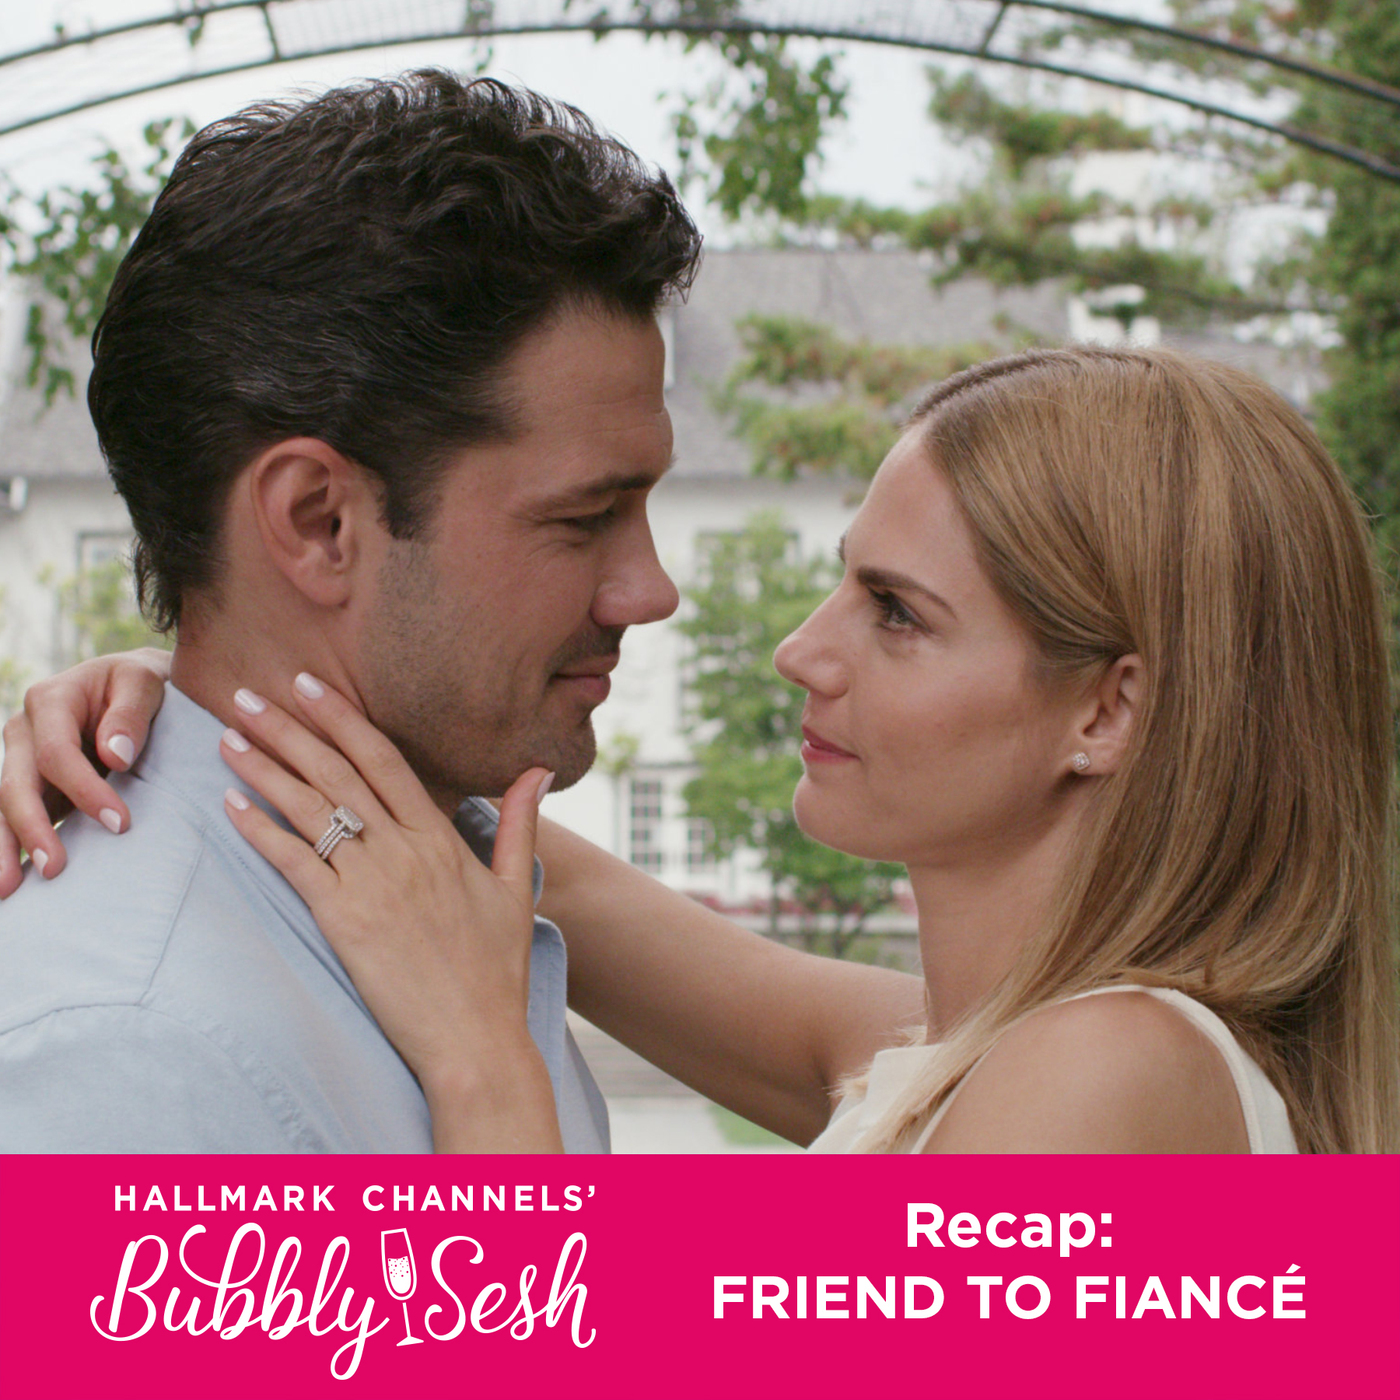 Friend to Fiancé Recap